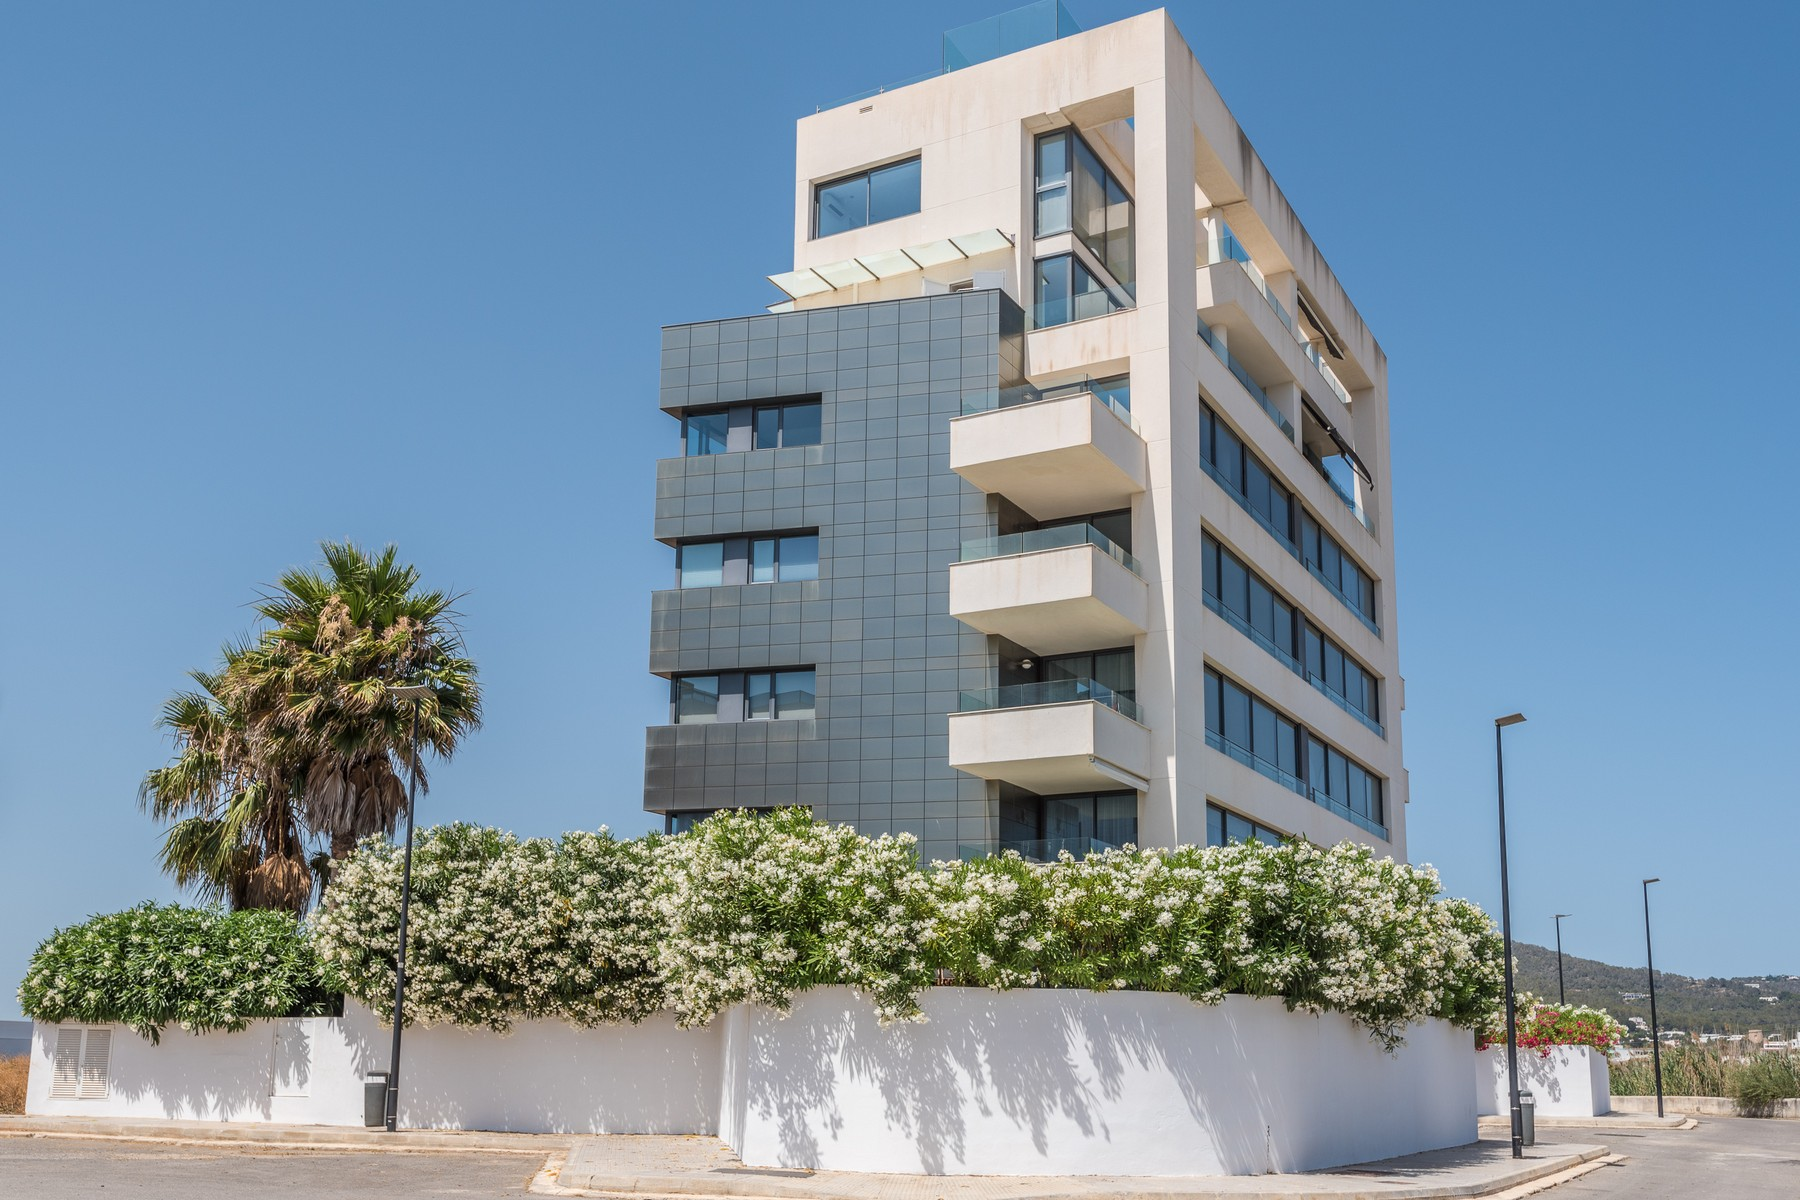 Apartment for Sale at Lovely Apartment With Open Views To Talamanca Ibiza, Ibiza, 07800 Spain